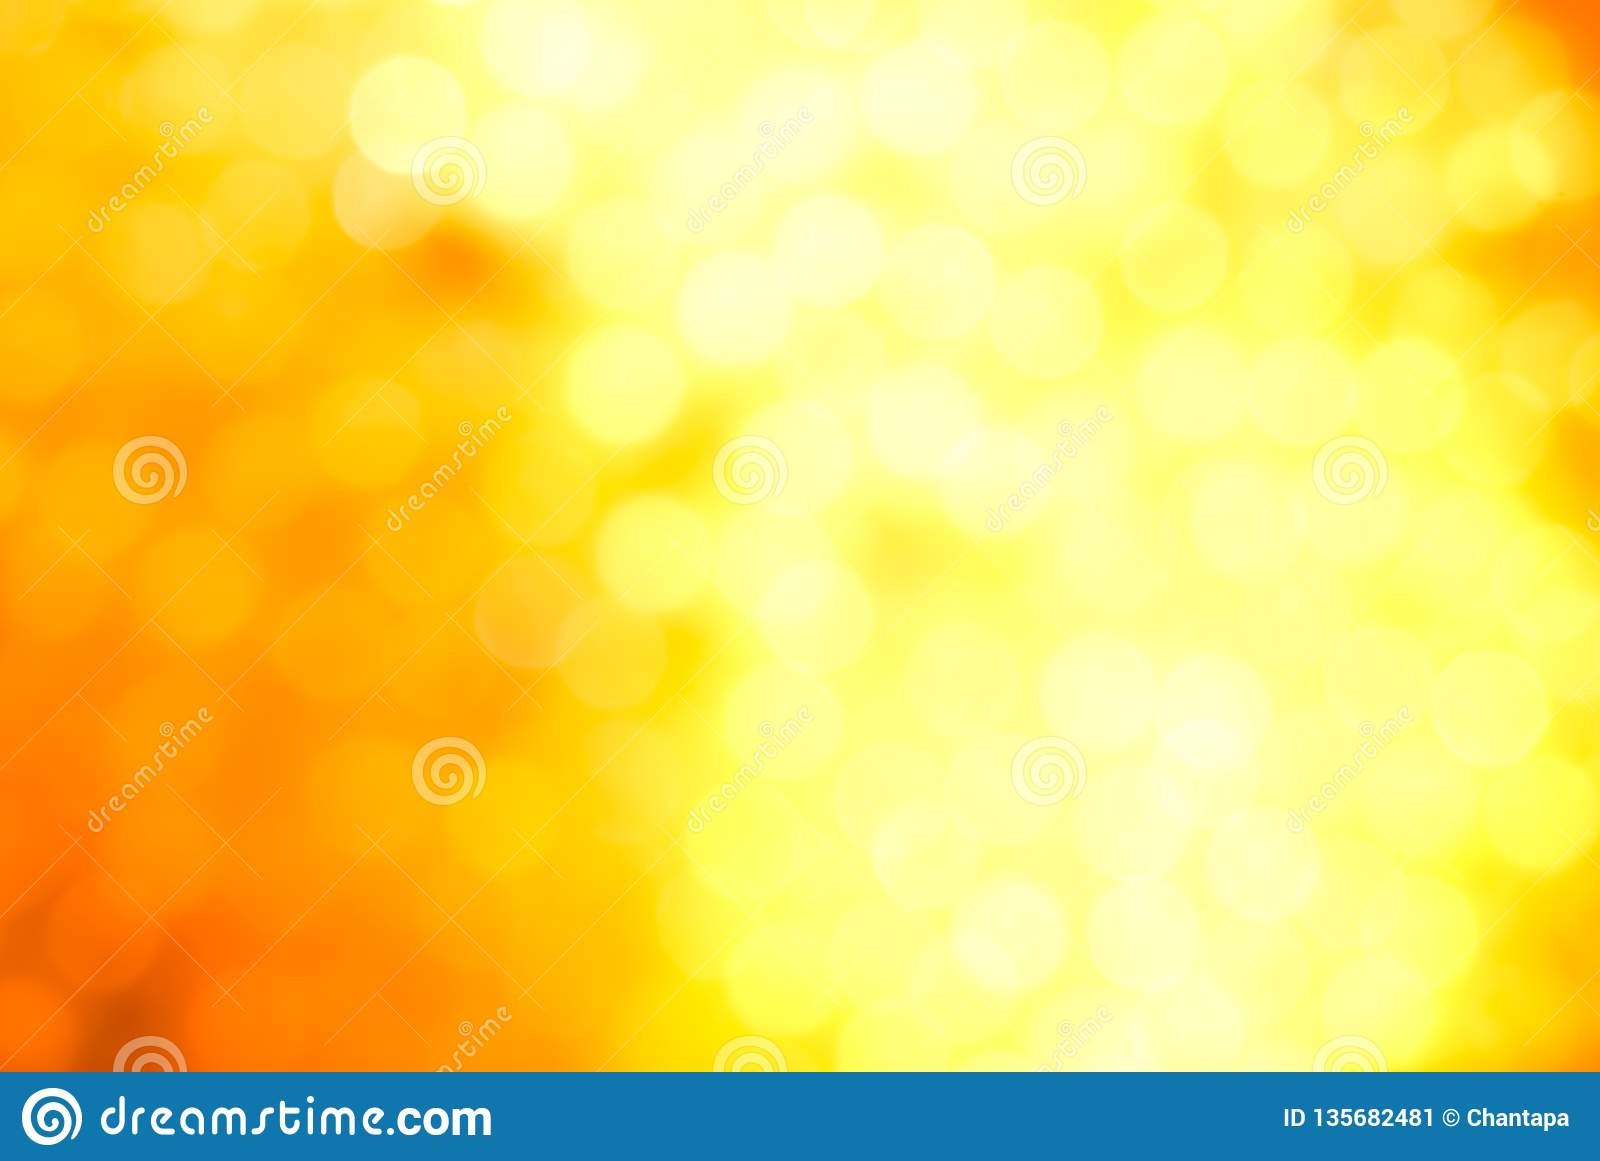 Abstract Orange Color Background Stock Image Image Of